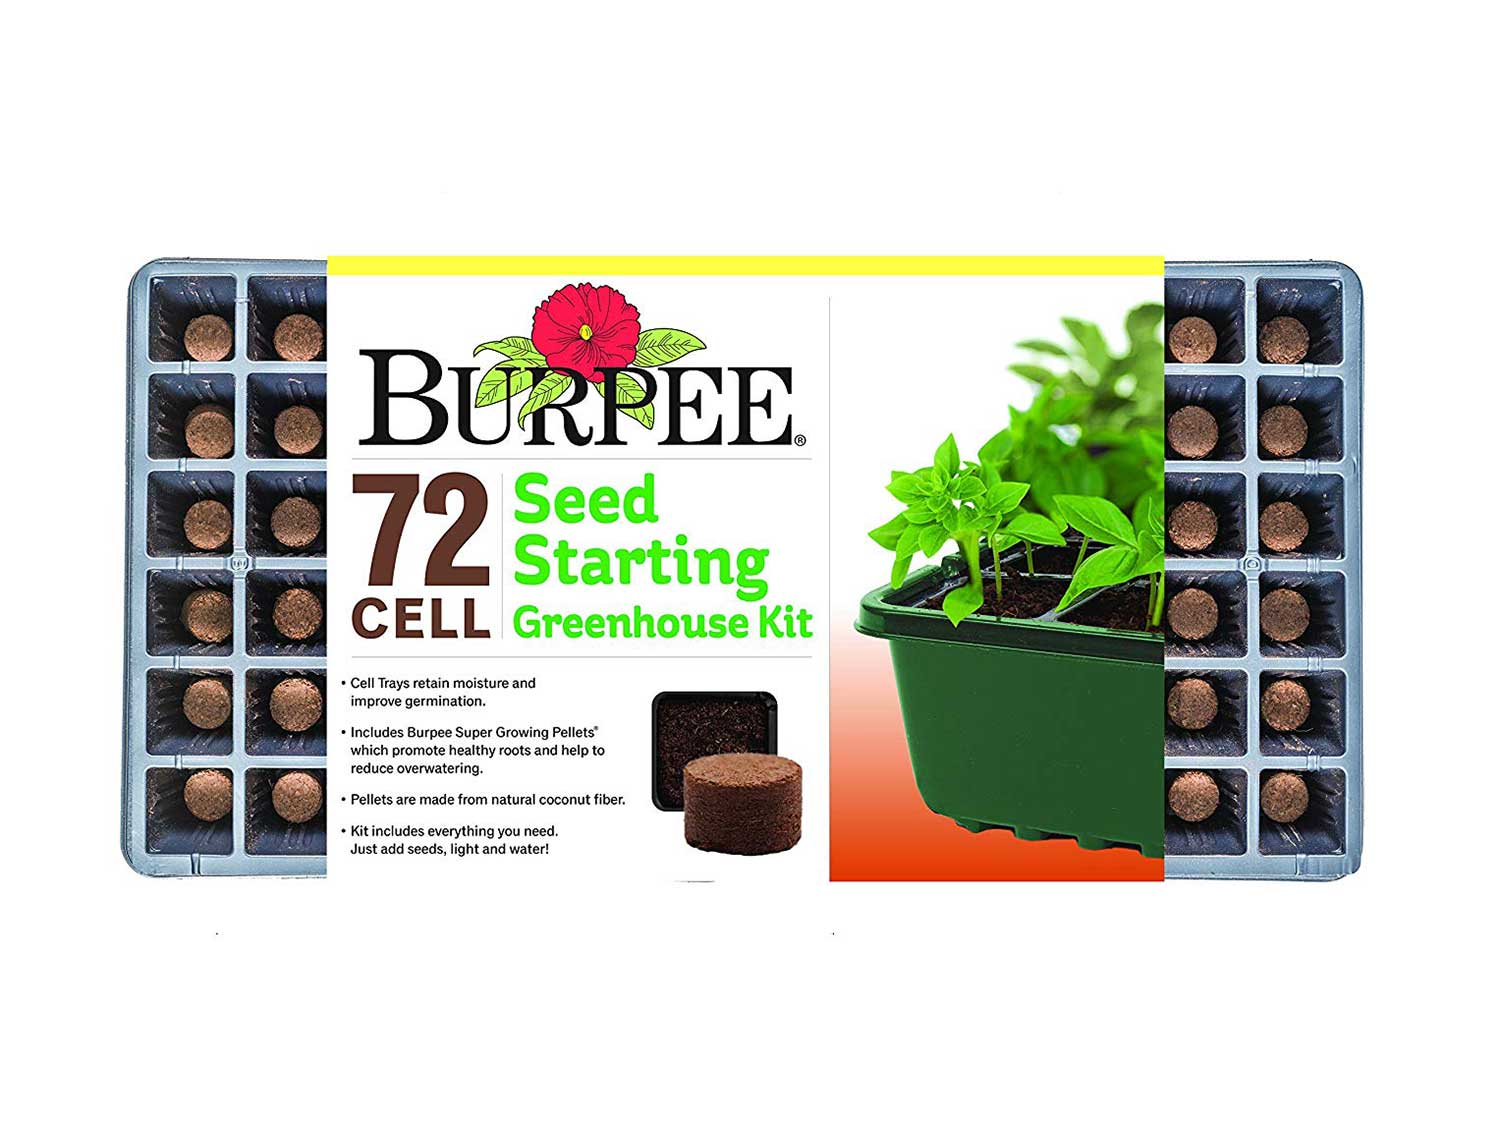 Burpee 72 Cell Seed Starting Greenhouse Kit